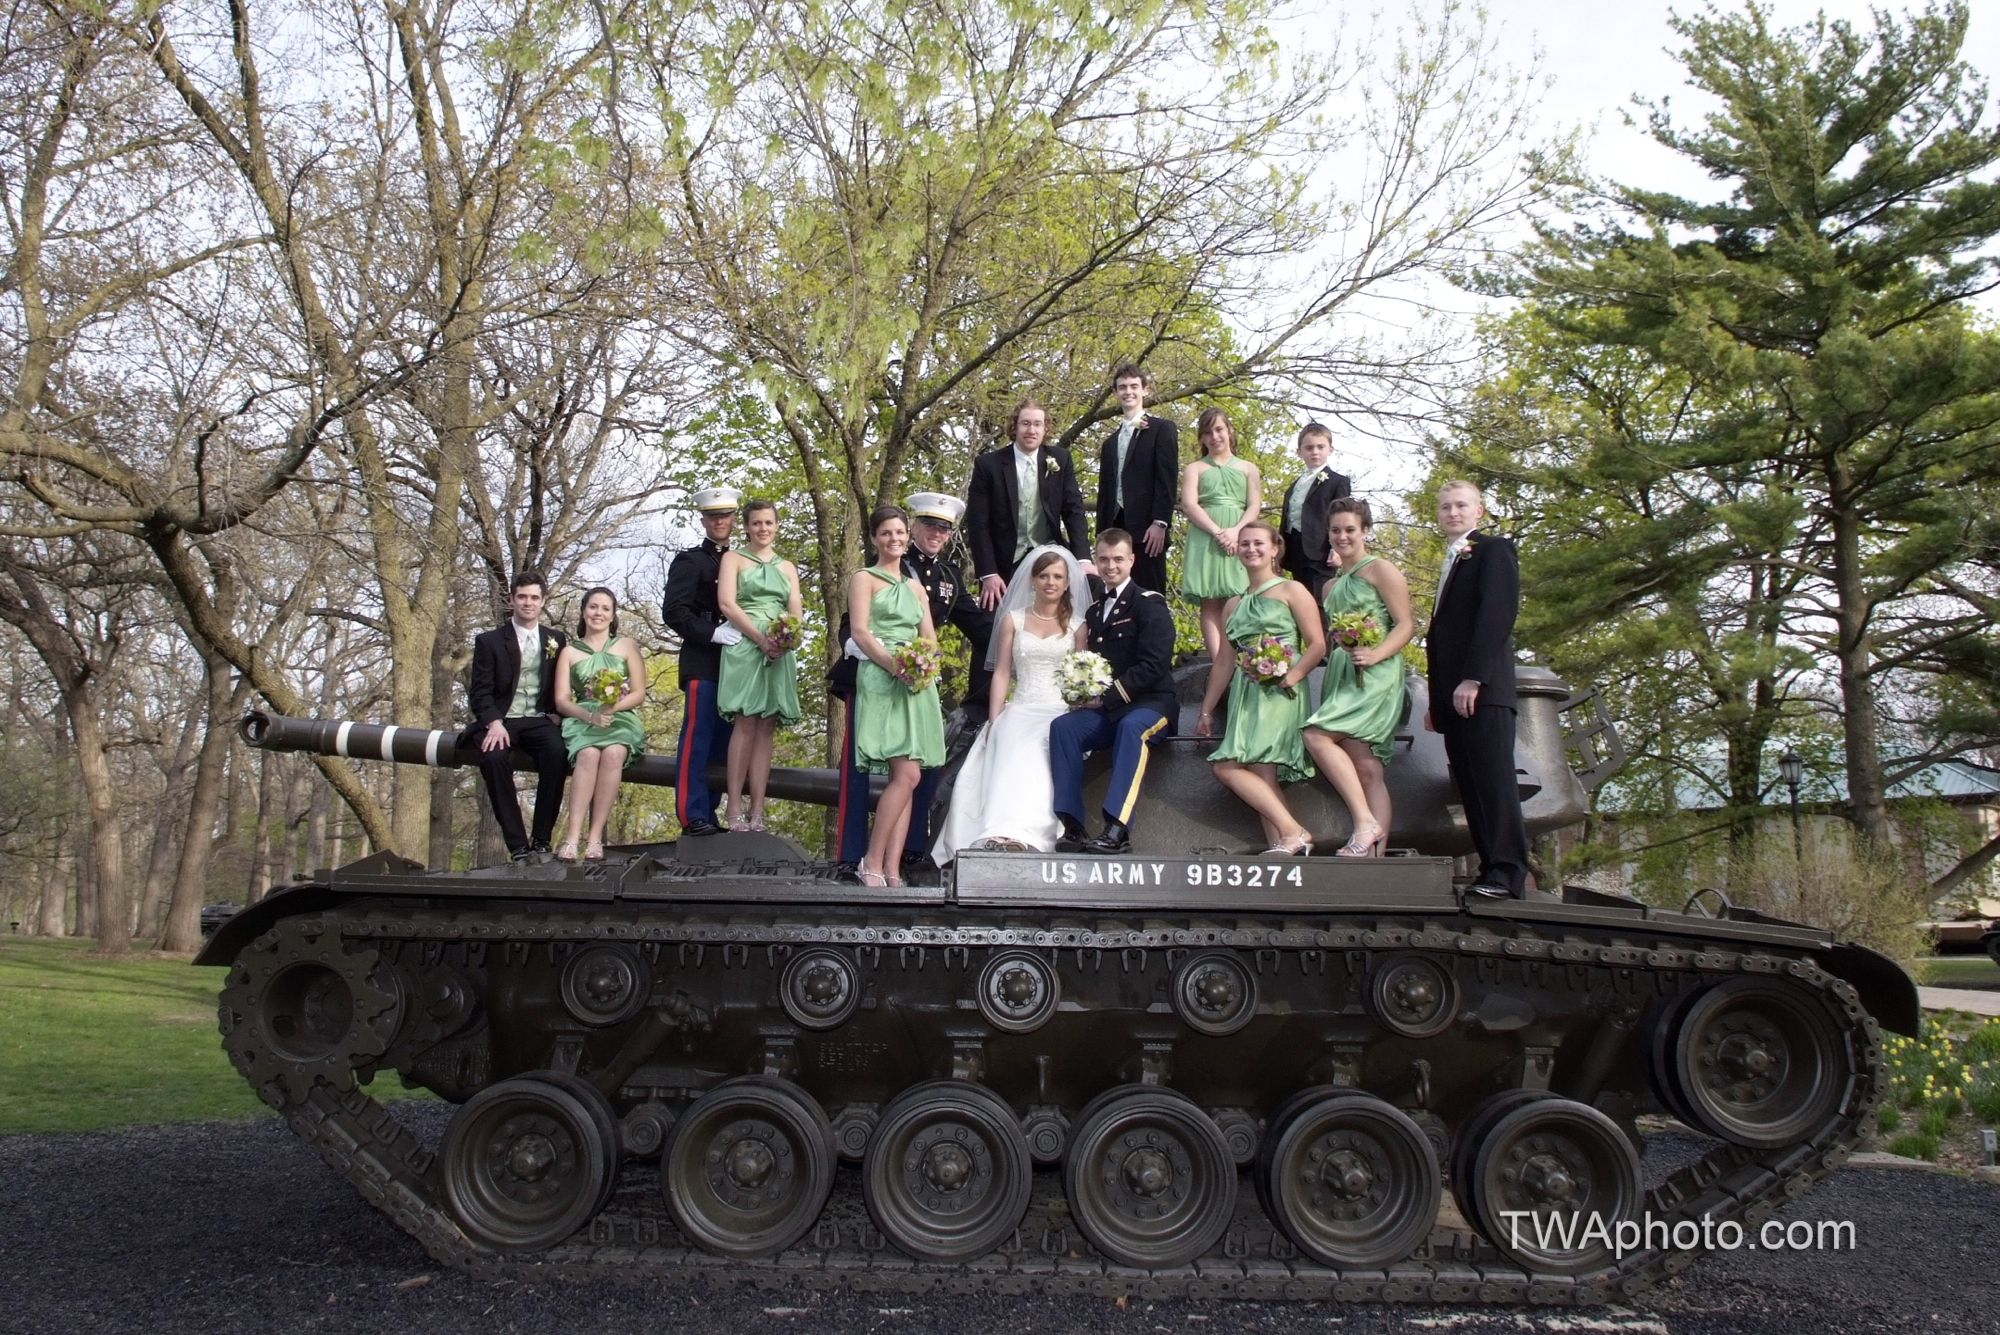 The #military theme is great and so is the color of the #bridesmaids dresses!